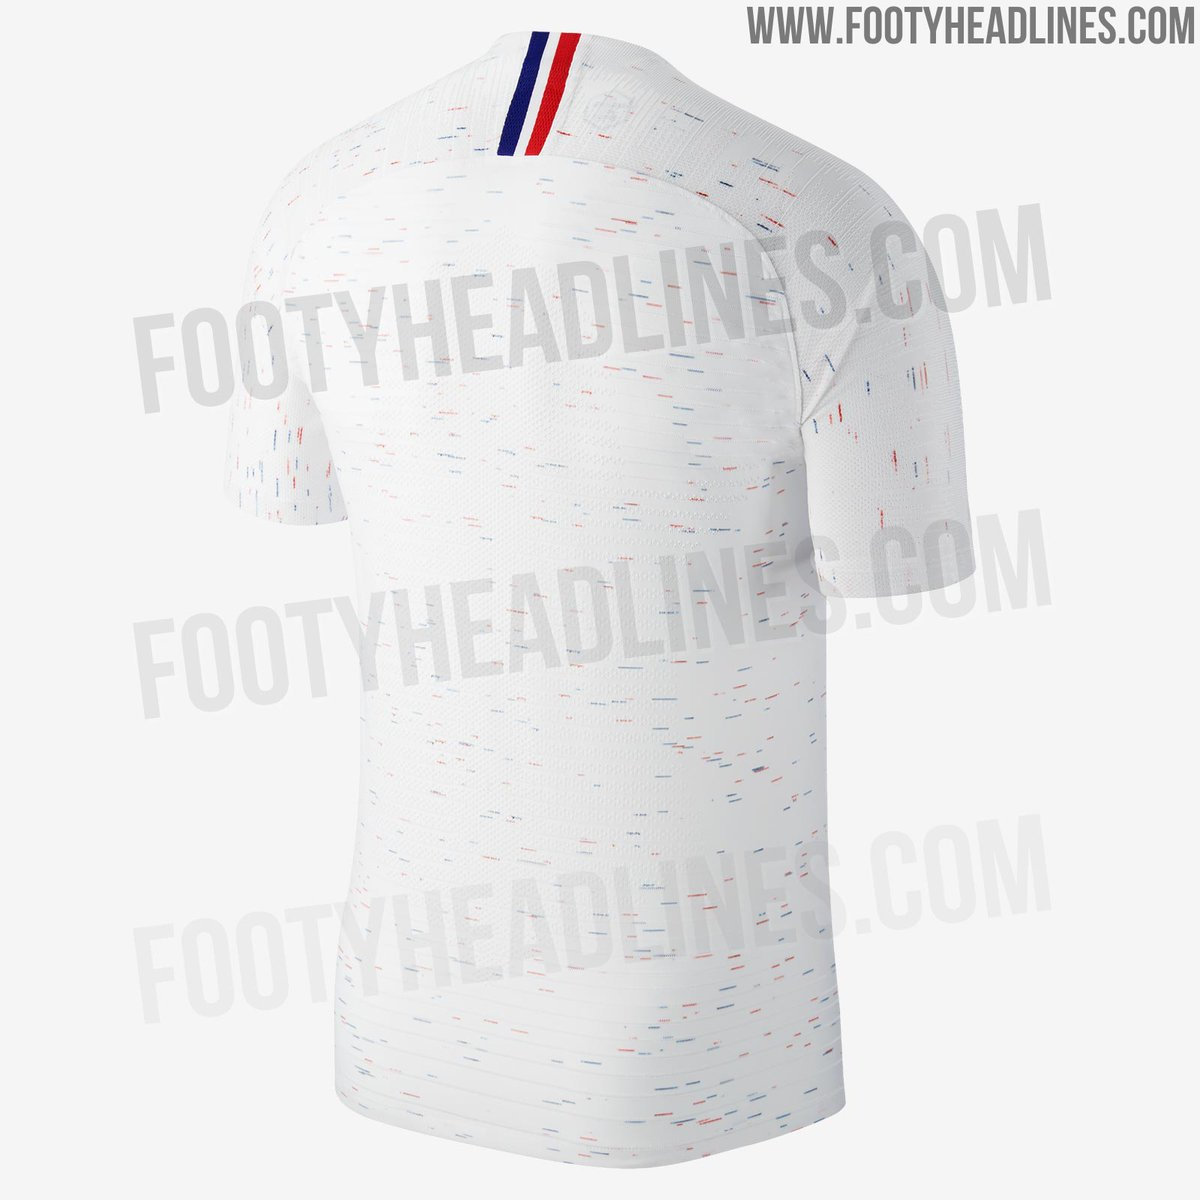 Maillot Exterieur Equipe De France Vines Foot On Twitter